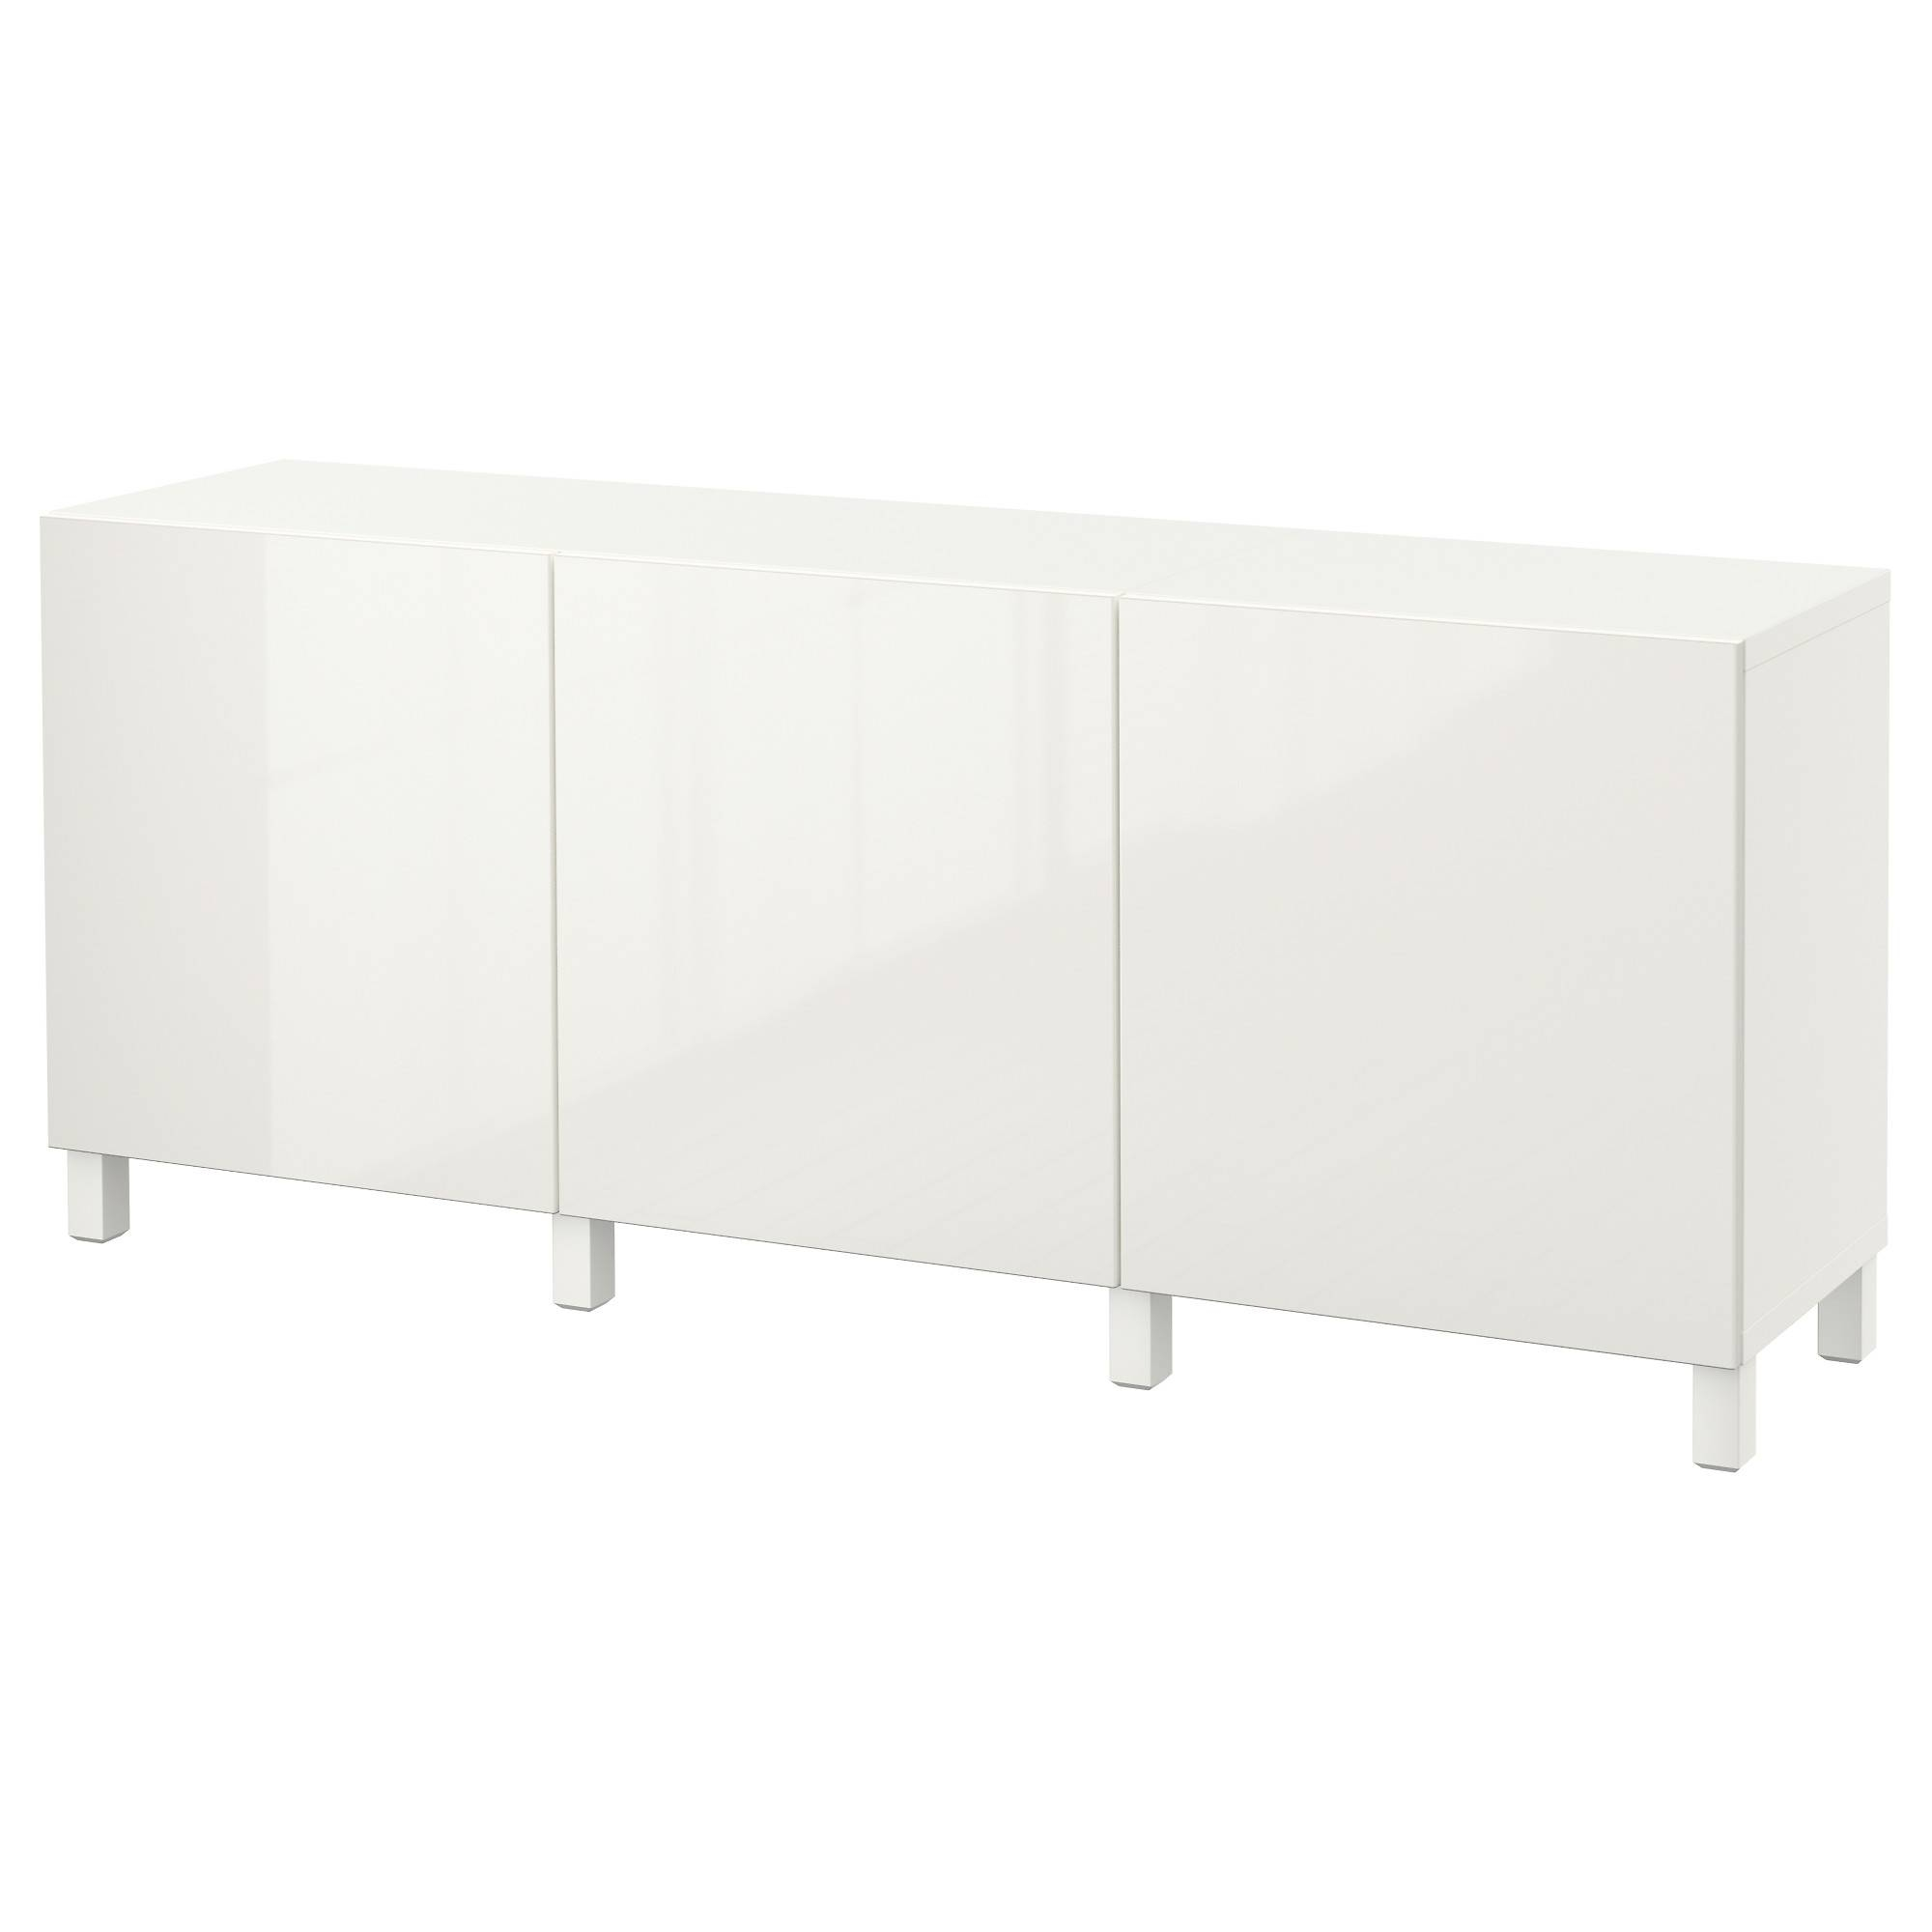 Bestå Storage Combination With Doors - White/selsviken High-Gloss intended for High Gloss Sideboards (Image 1 of 30)